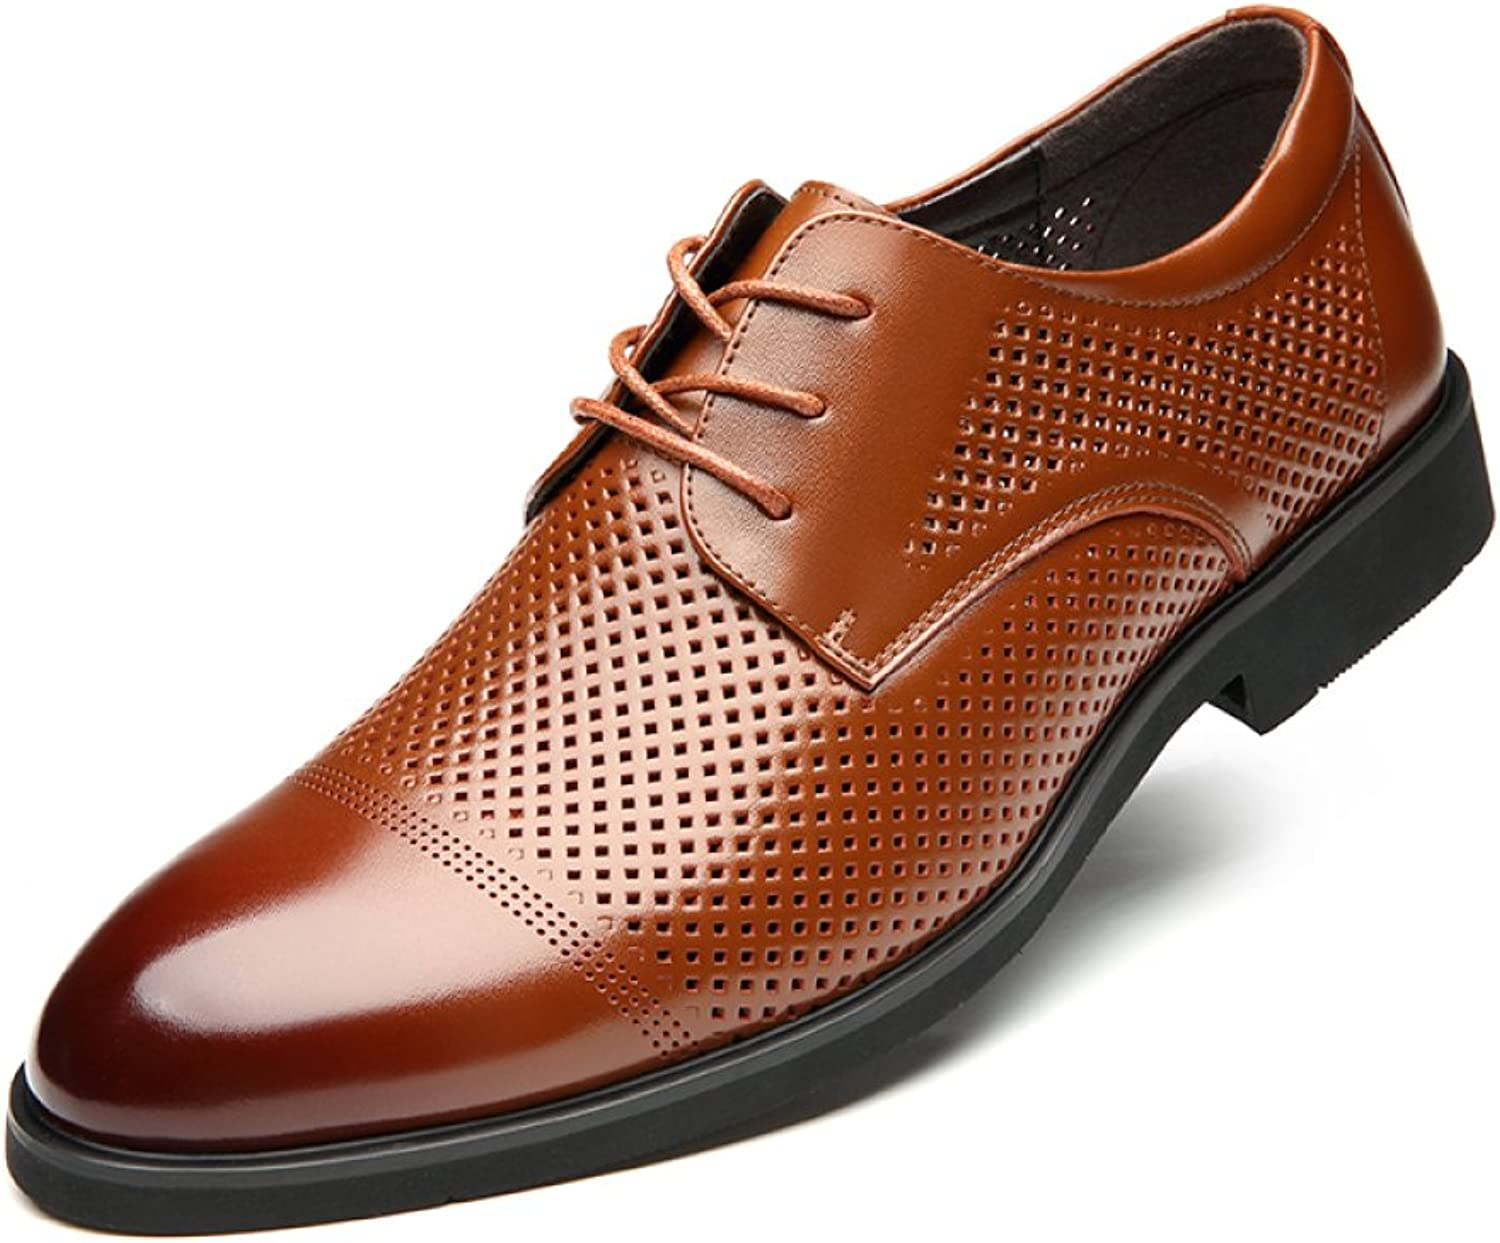 4c0b907bde1dd Summer New Men's Summer Business Casual shoes Dress shoes Leather ...